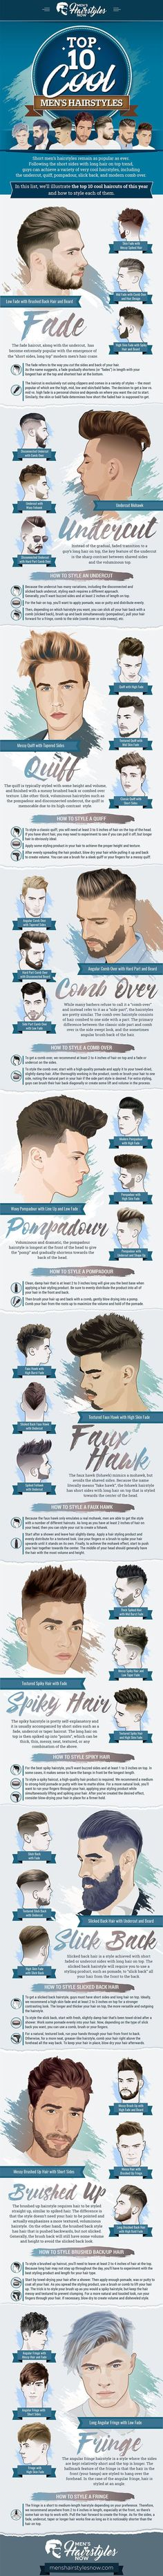 Cool Hairstyles For Men - Best Trendy and Stylish Men's Haircuts 2 Haircuts